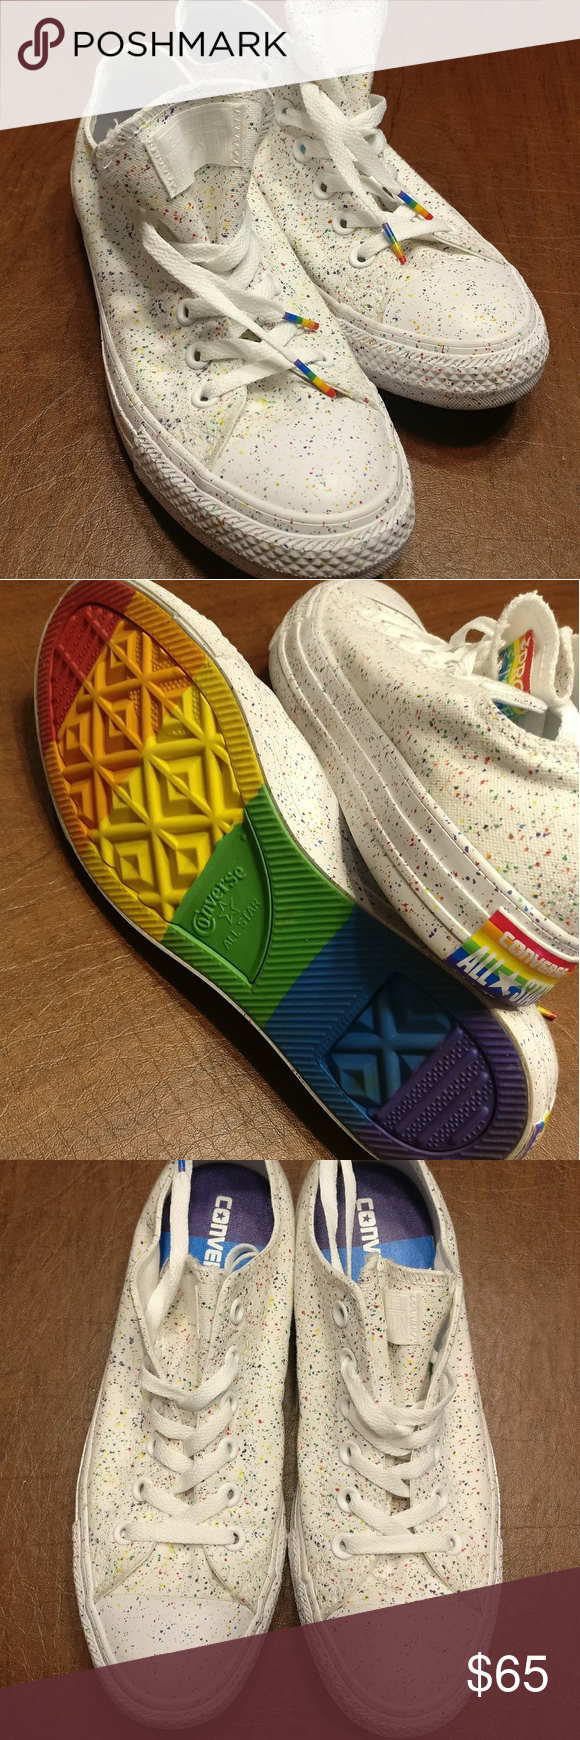 15c724bf0e630b White Low Top Converse Rainbow Splatter Pride Super fun white low tops.  Only worn once